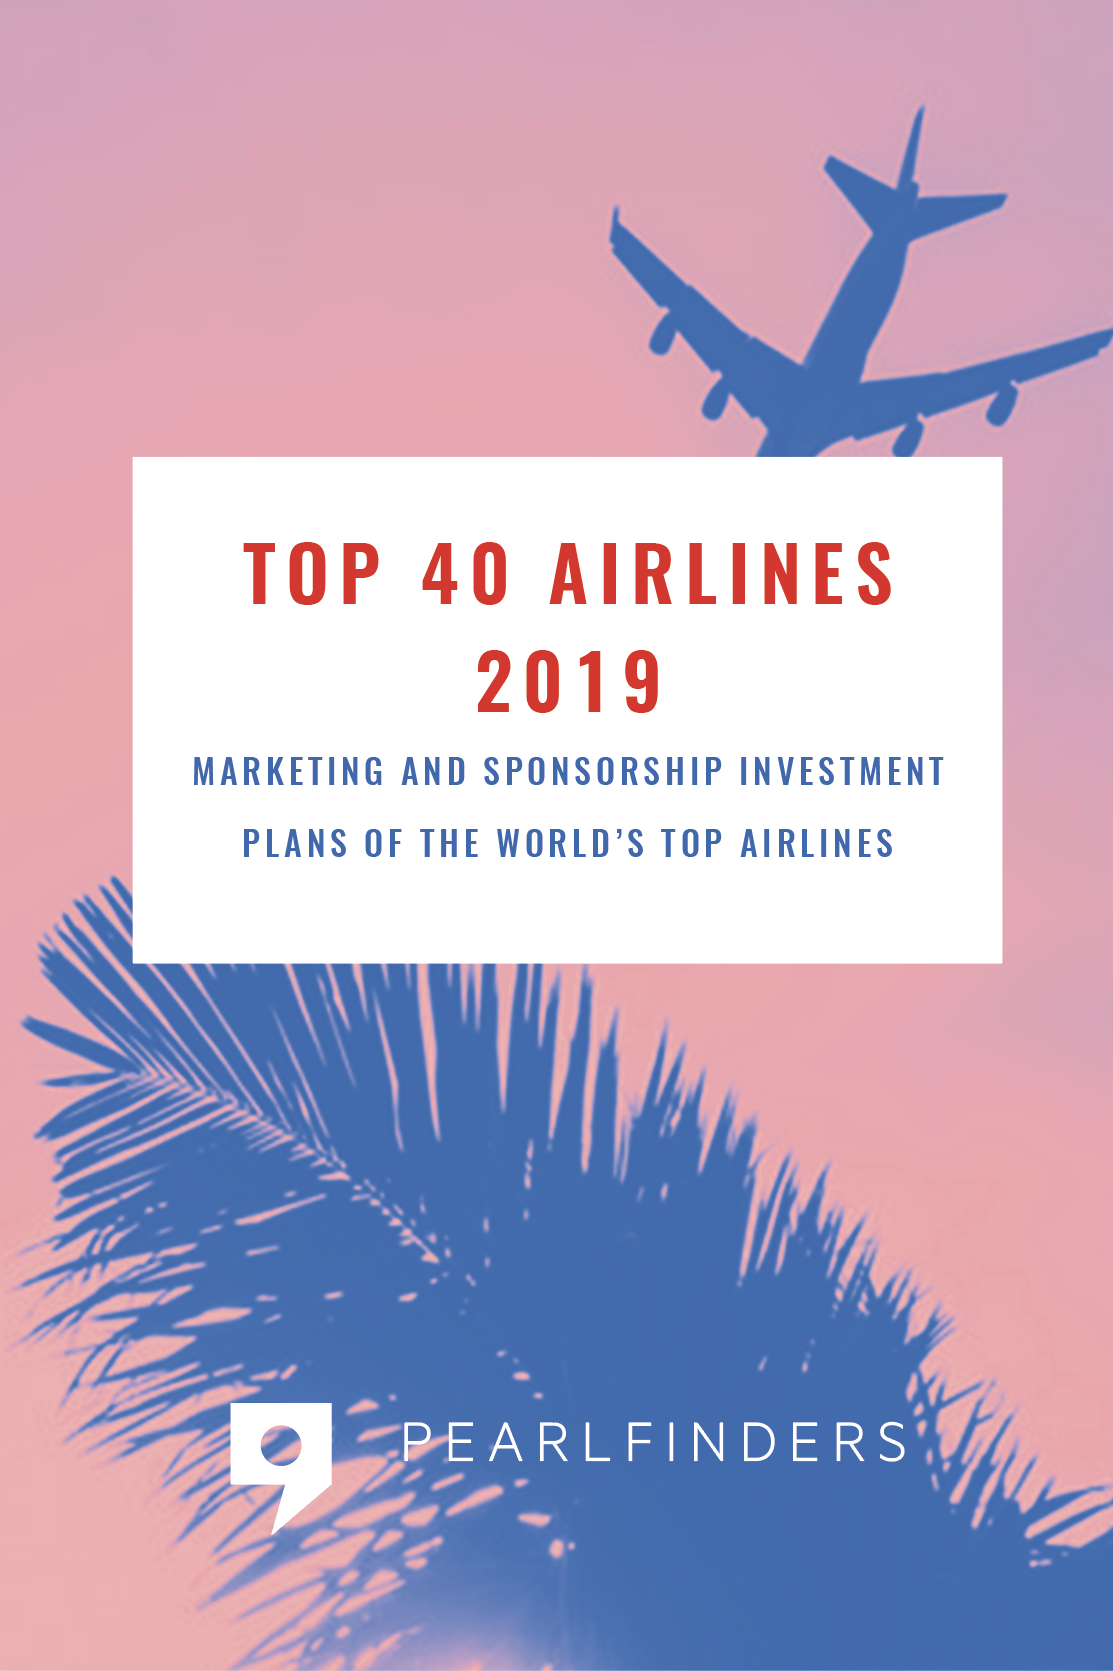 Top 40 airlines cover.png